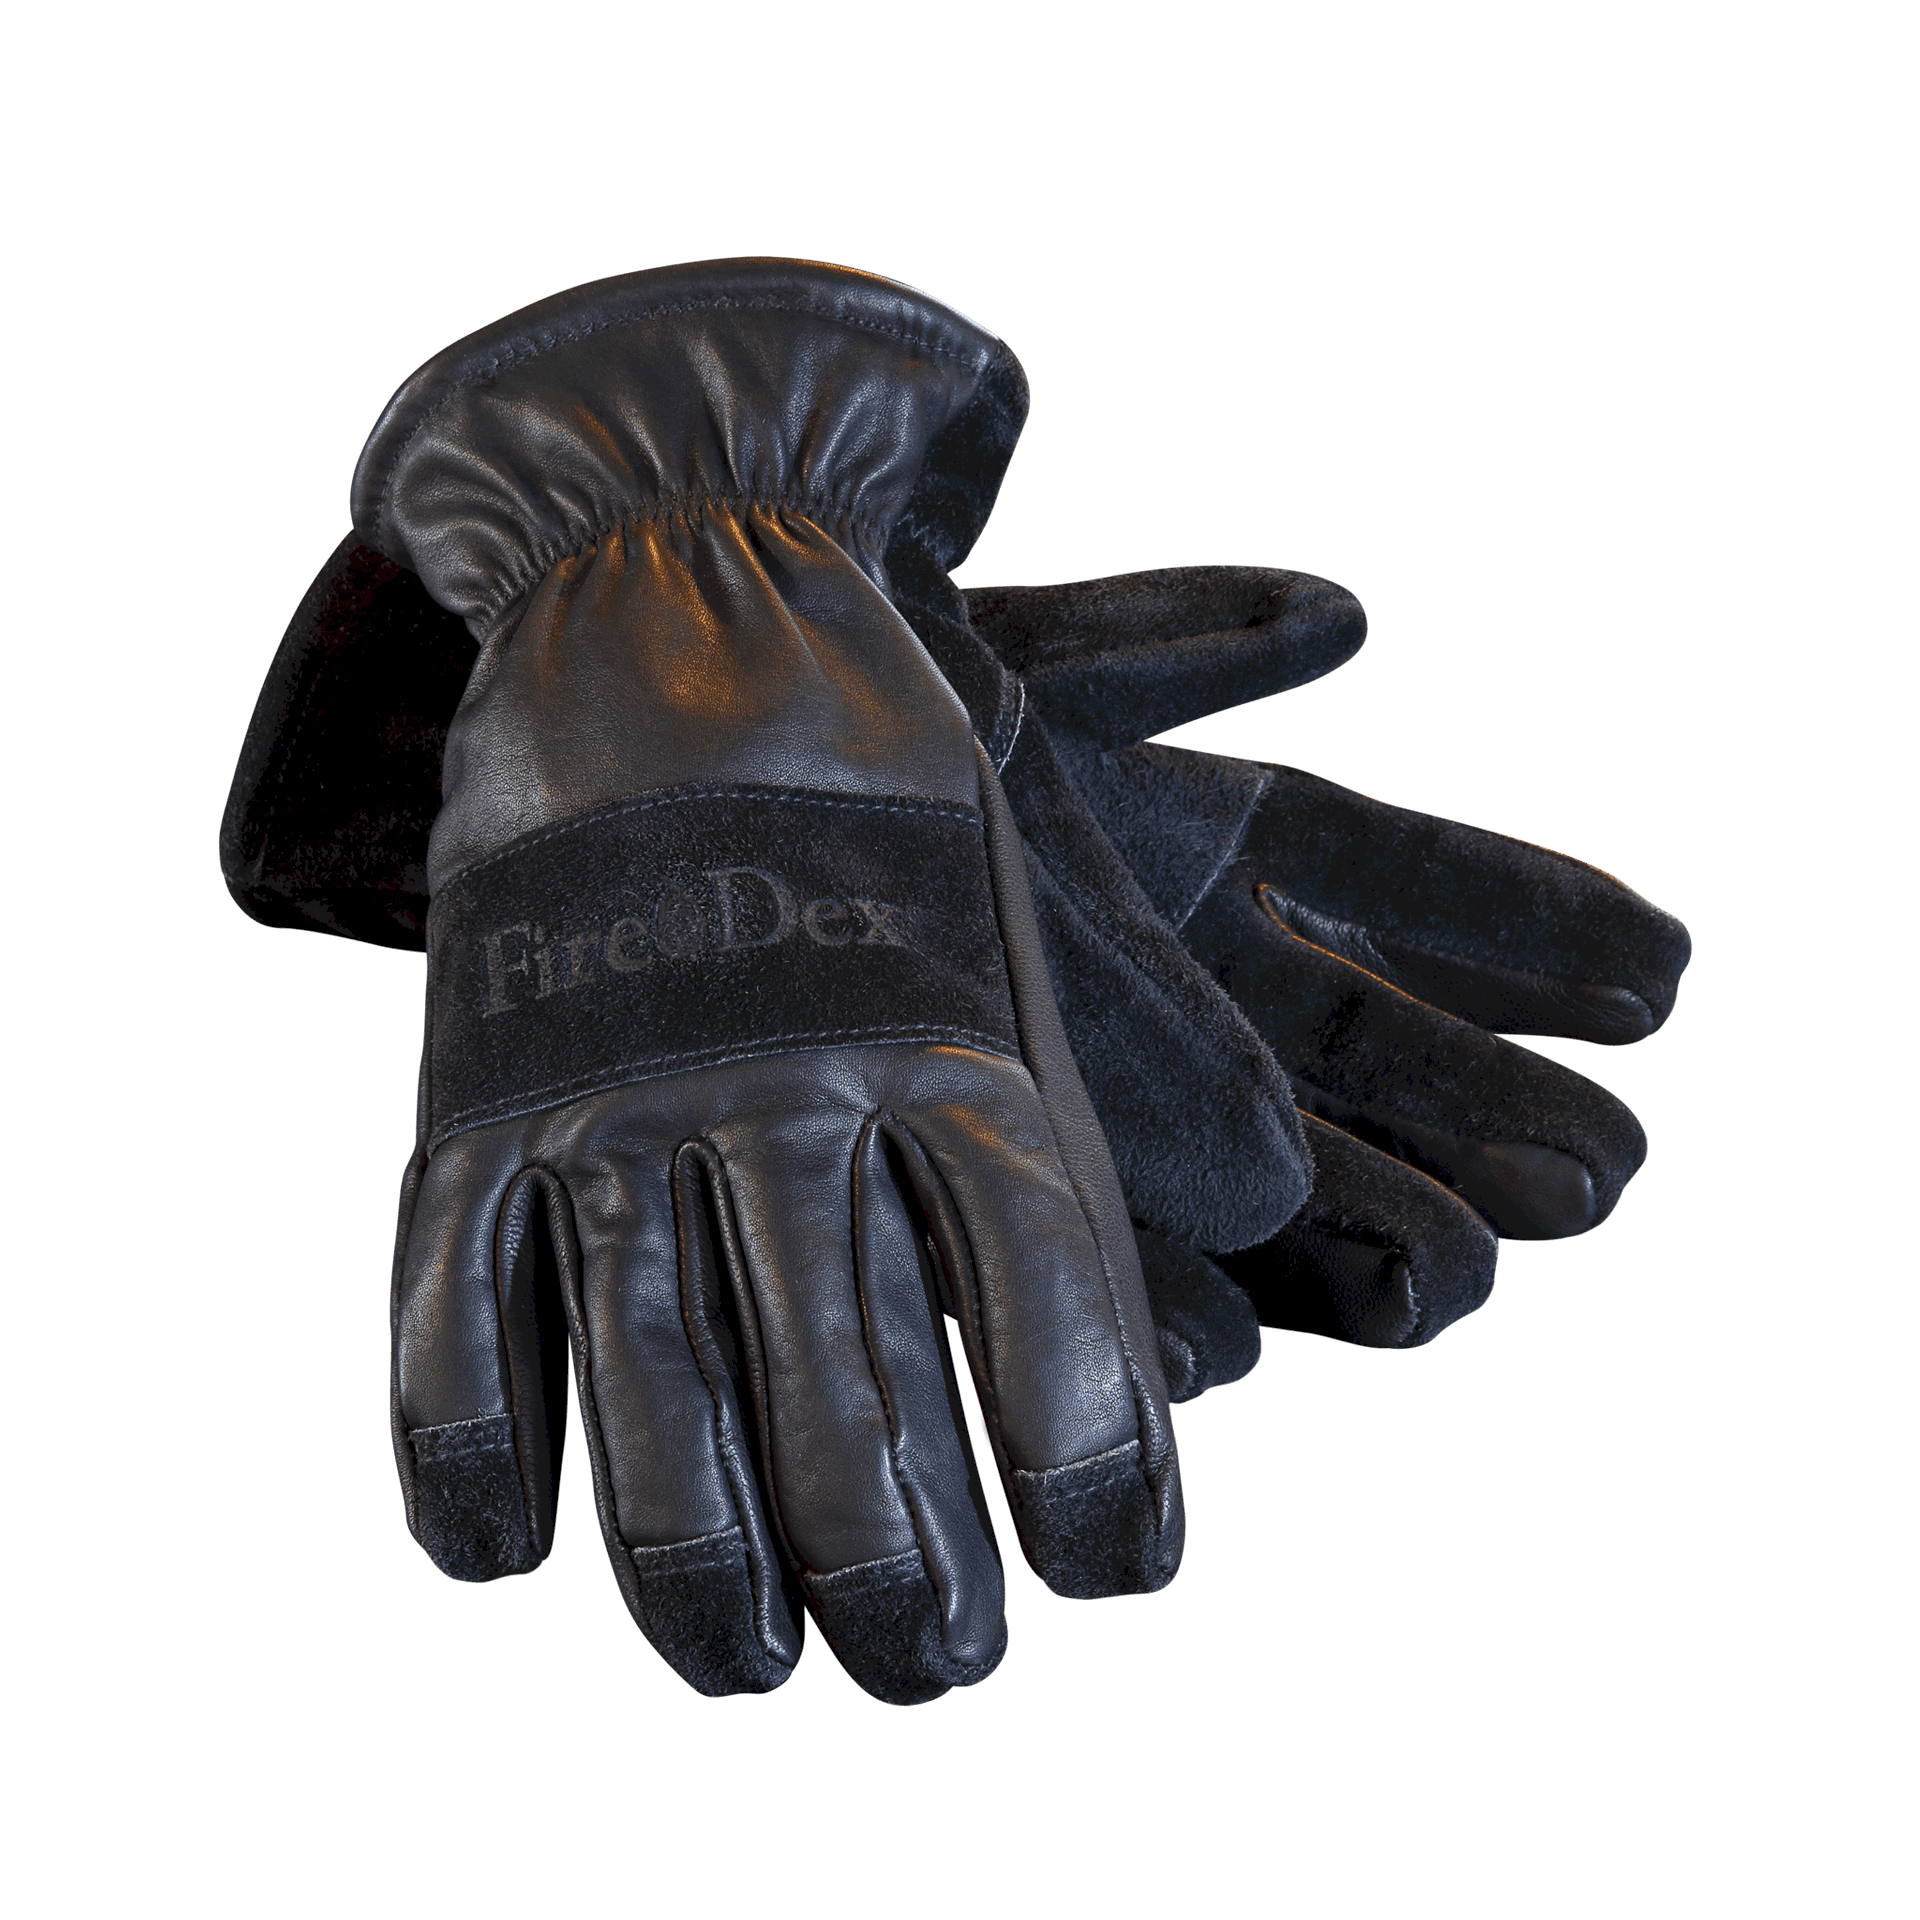 Fire-Dex Dex-Pro Gloves with gauntlet wrist